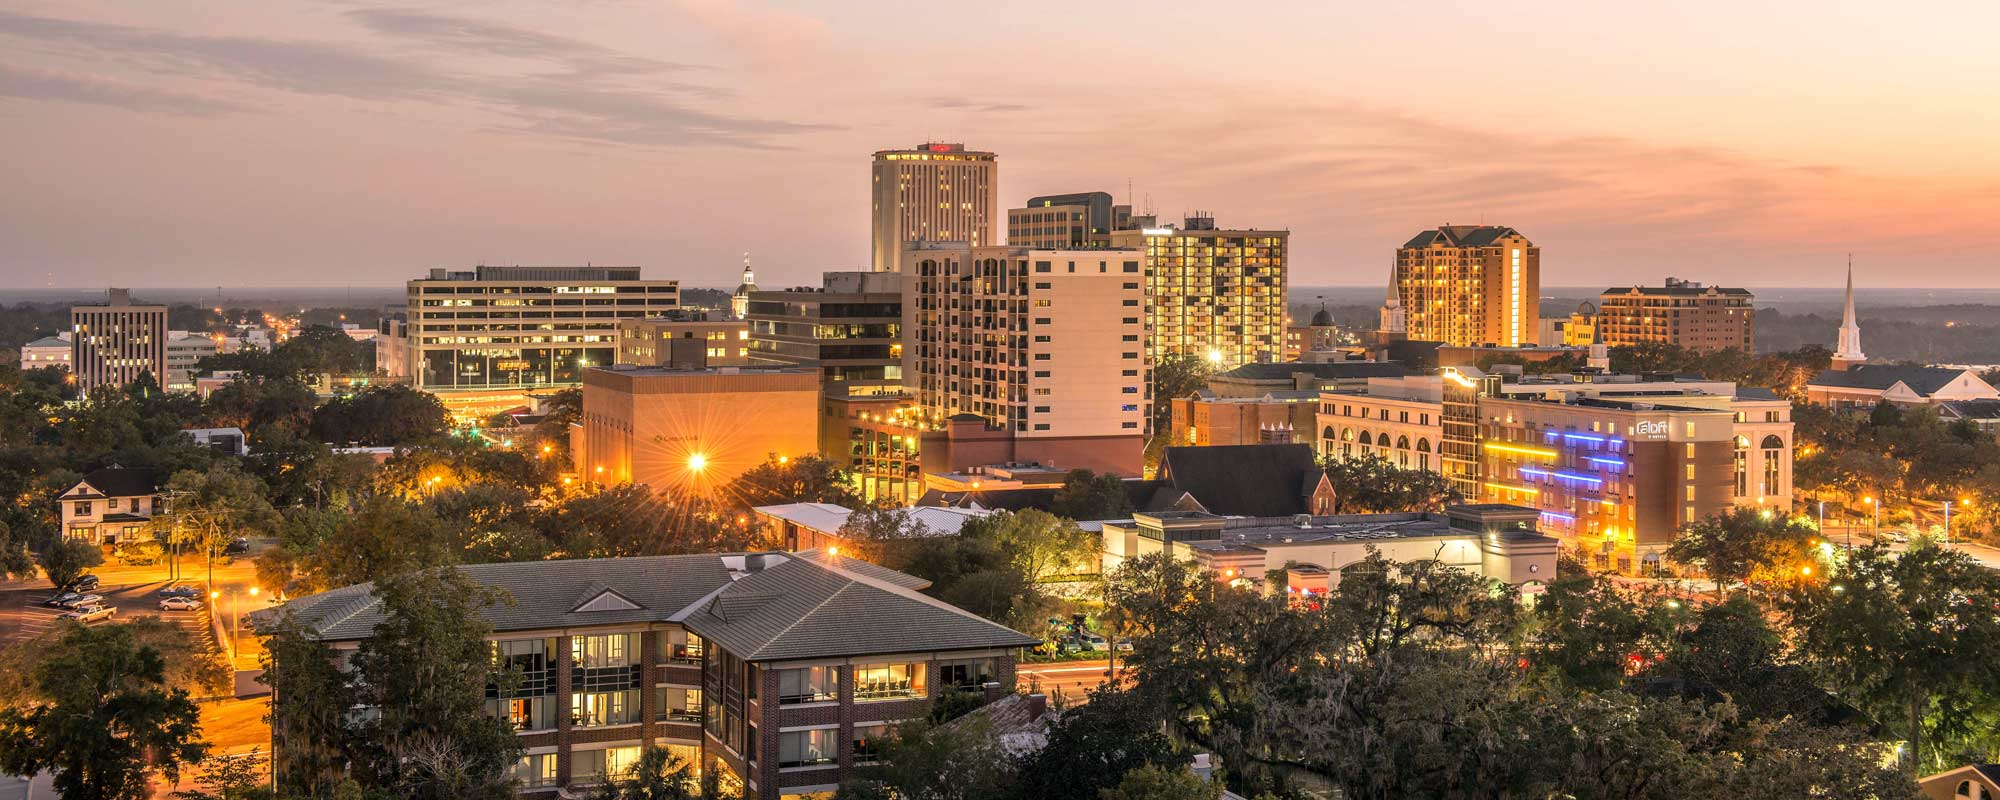 Looking for things to do events or information on what makes visiting Tallahassee great Visit our website today to learn about the best city in Florida!